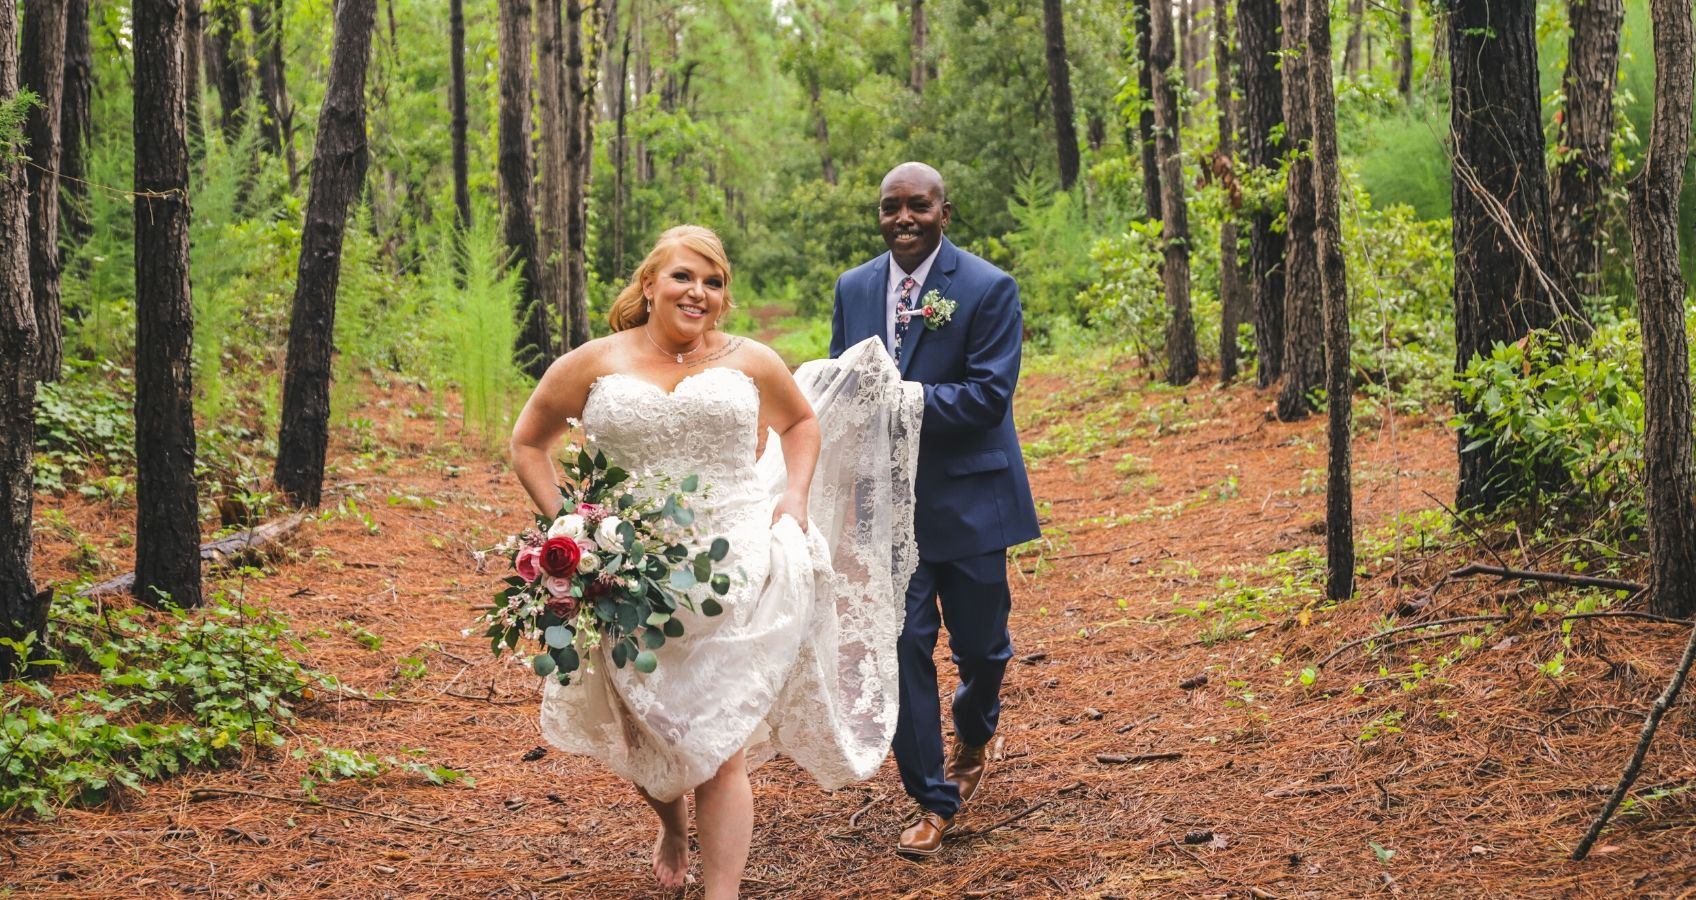 Time to Take Things Outside! Outdoor Wedding Inspiration